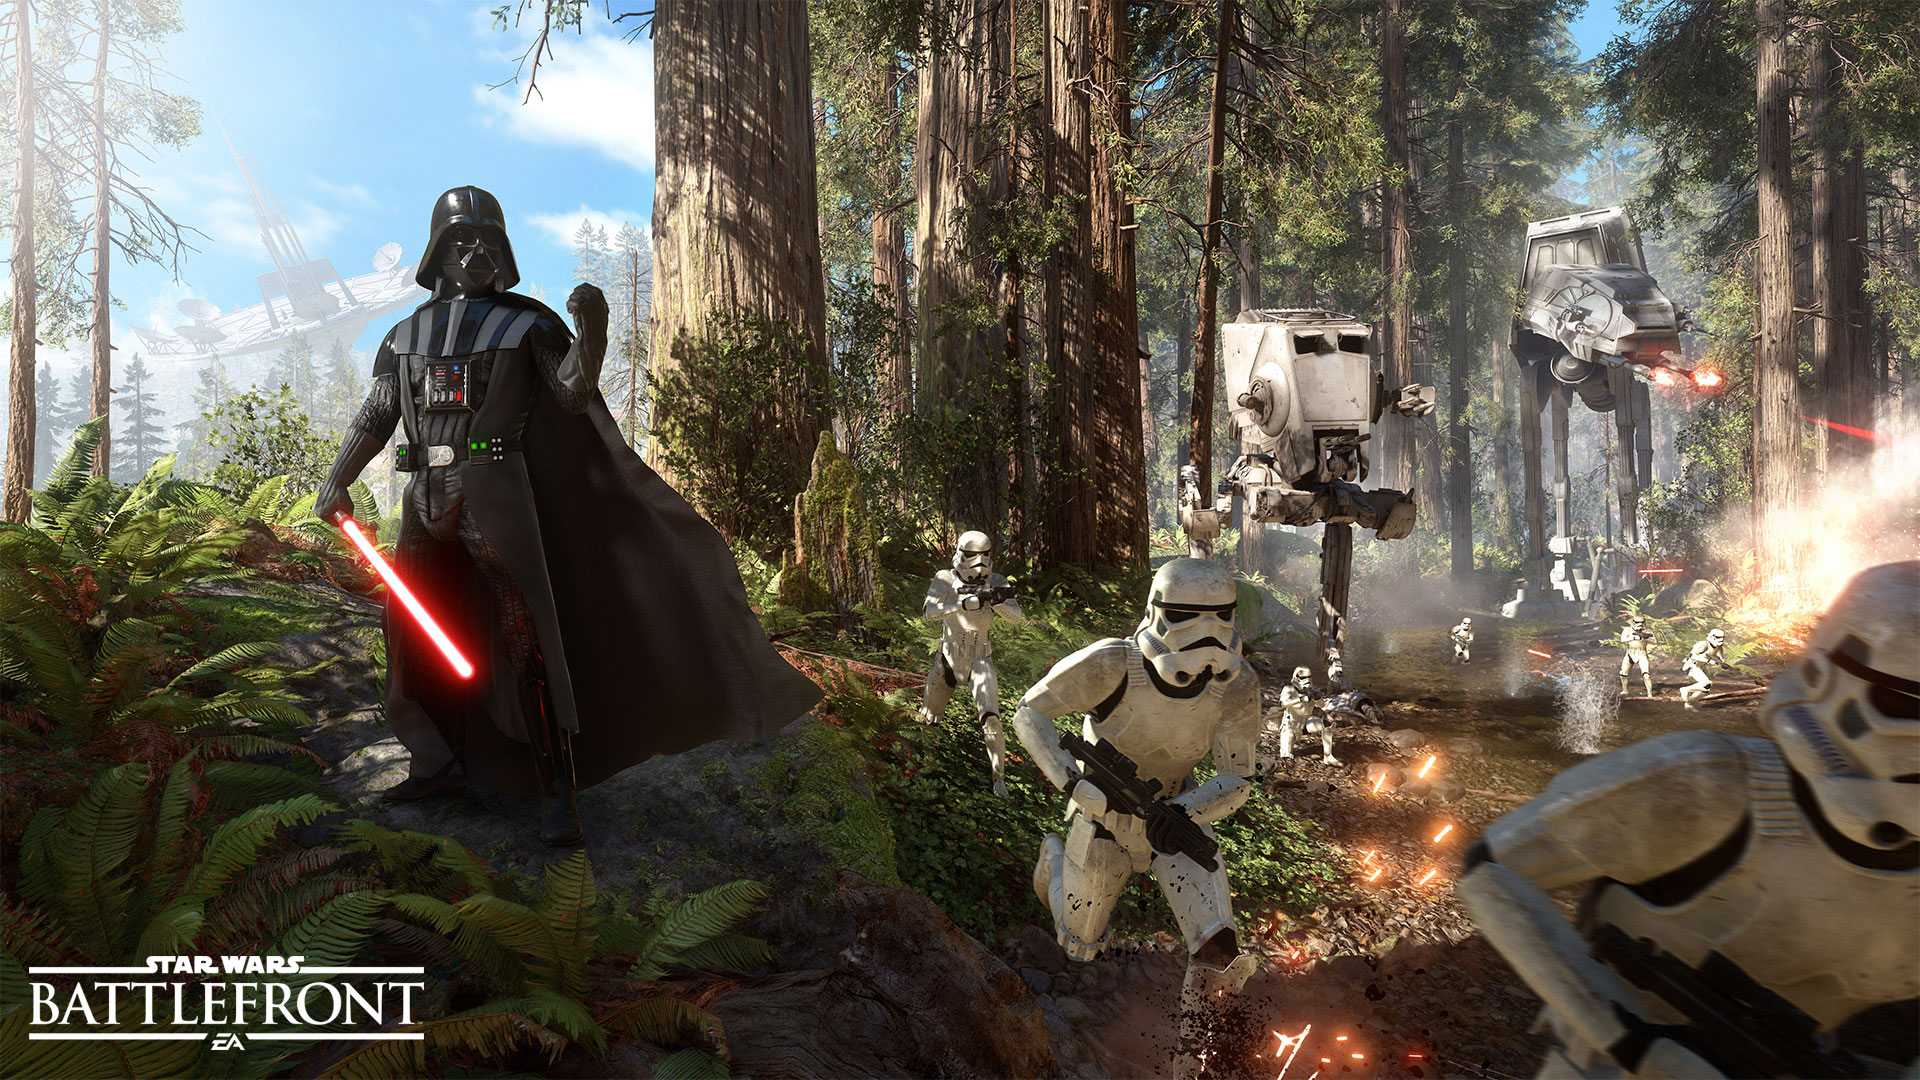 DICE details three new Star Wars: Battlefront game modes